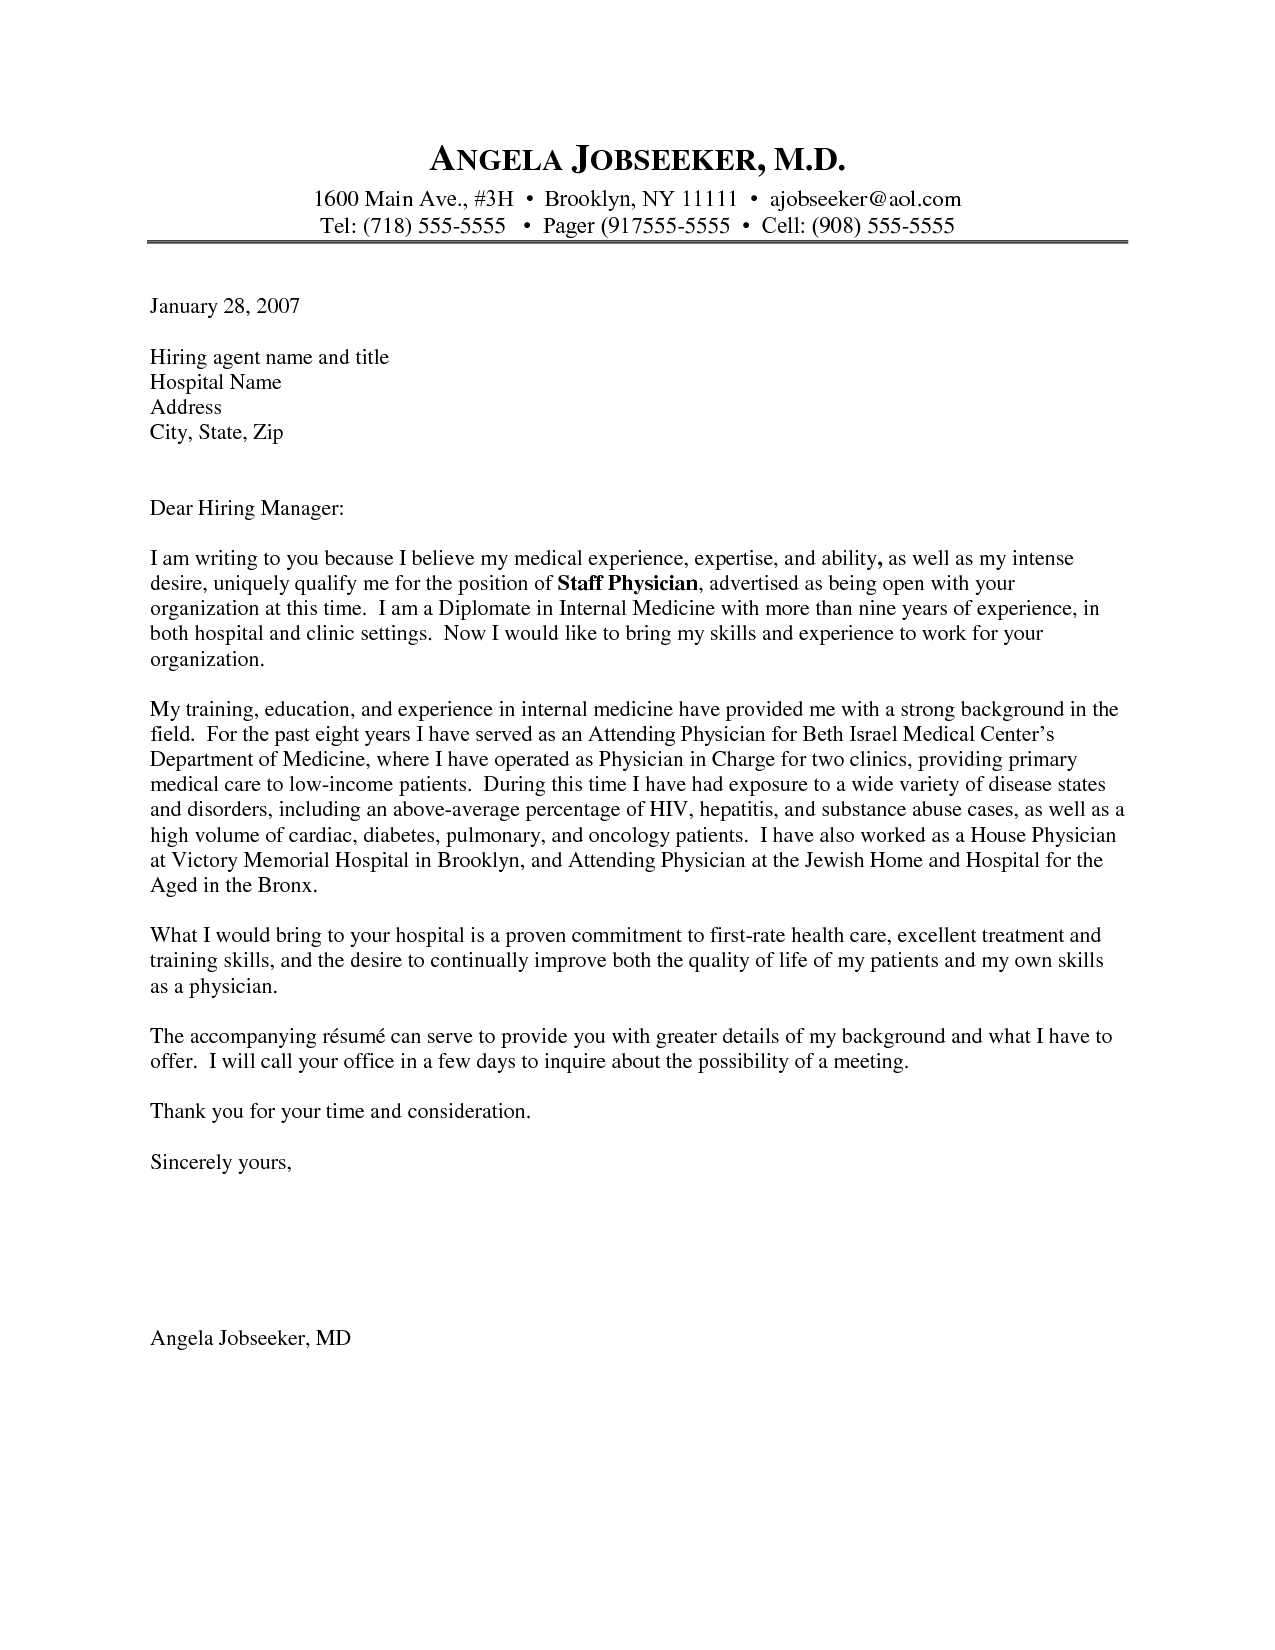 examples of medical coverletters doctor cover letter example my